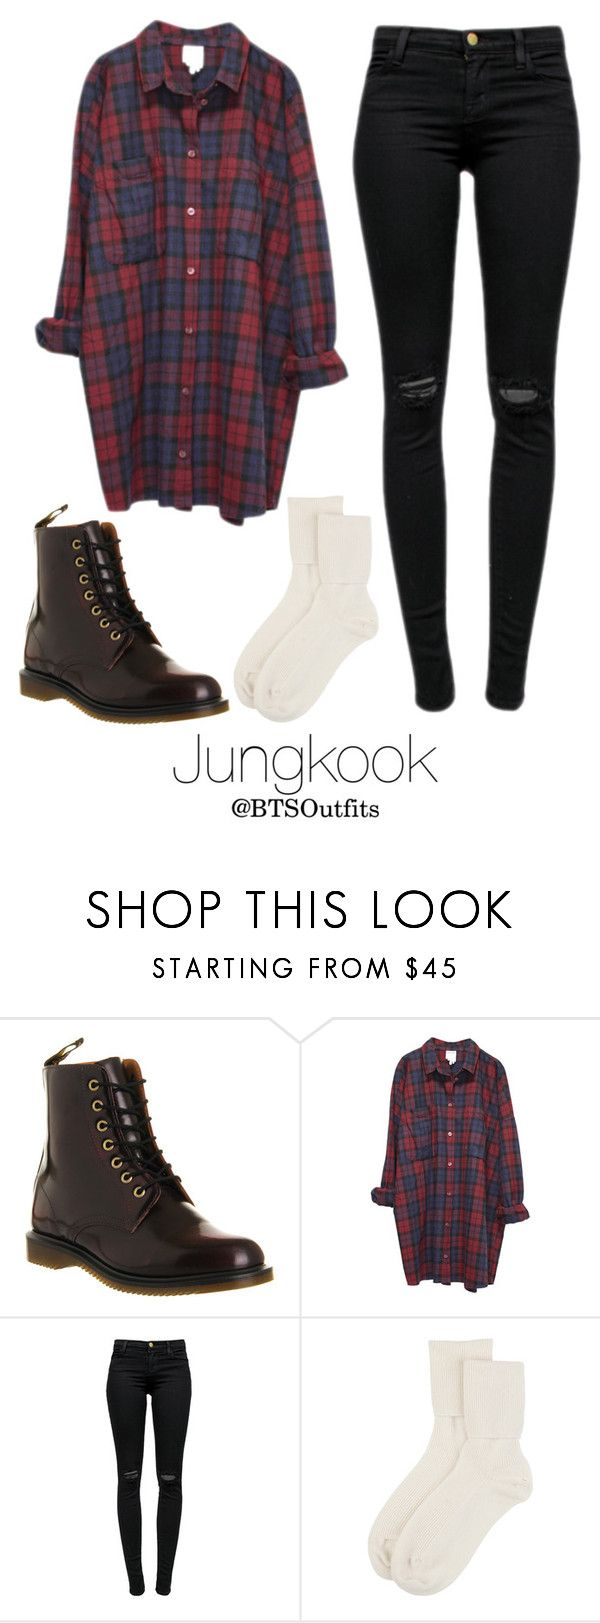 """""""Horseback riding with Jungkook"""" by btsoutfits ❤ liked on Polyvore featuring Dr. Martens, Monki, J Brand and Johnstons of Elgin"""